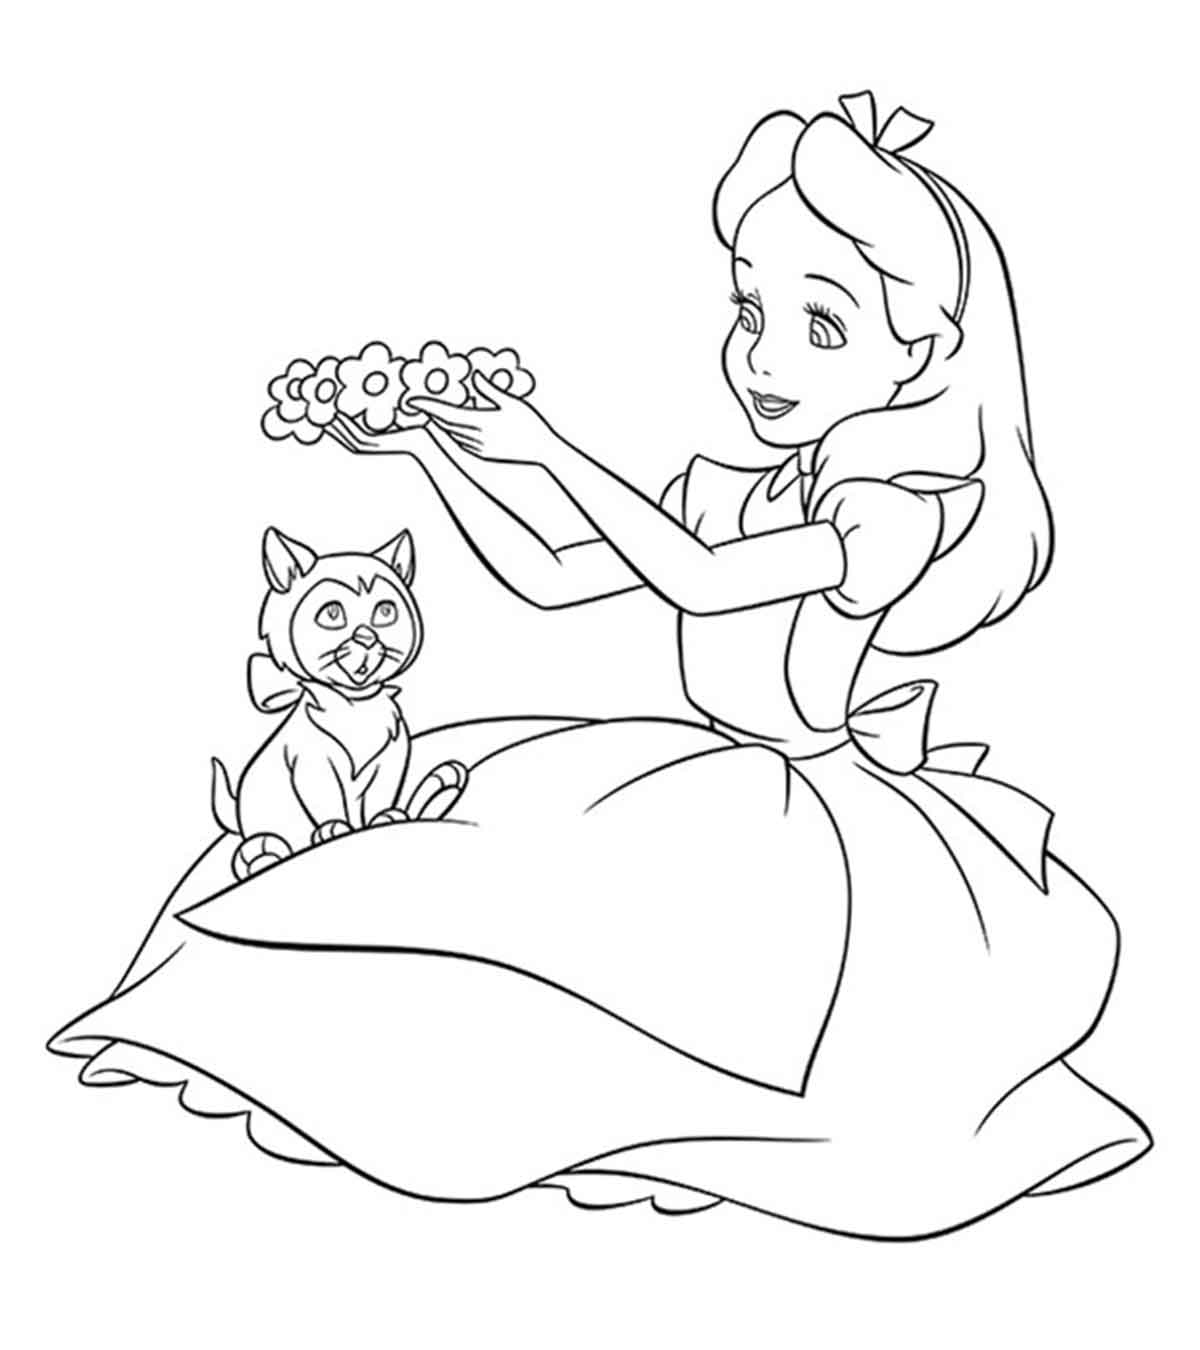 disney character coloring pages disney babies coloring pages 5 disneyclipscom coloring character disney pages